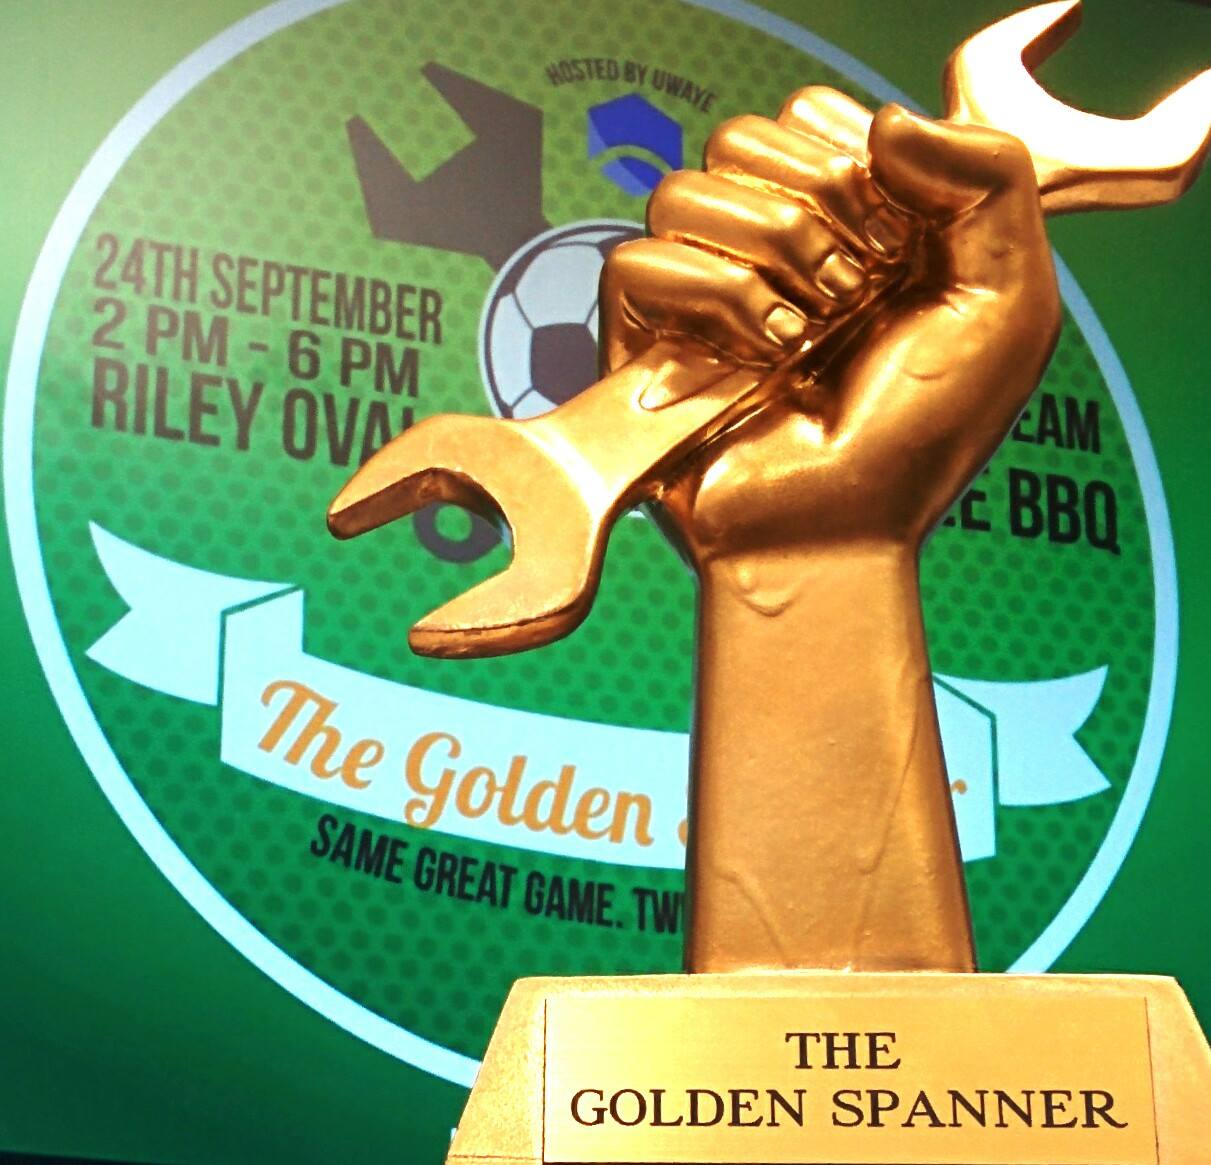 The Golden Spanner - Interspecialisation Soccer Tournament